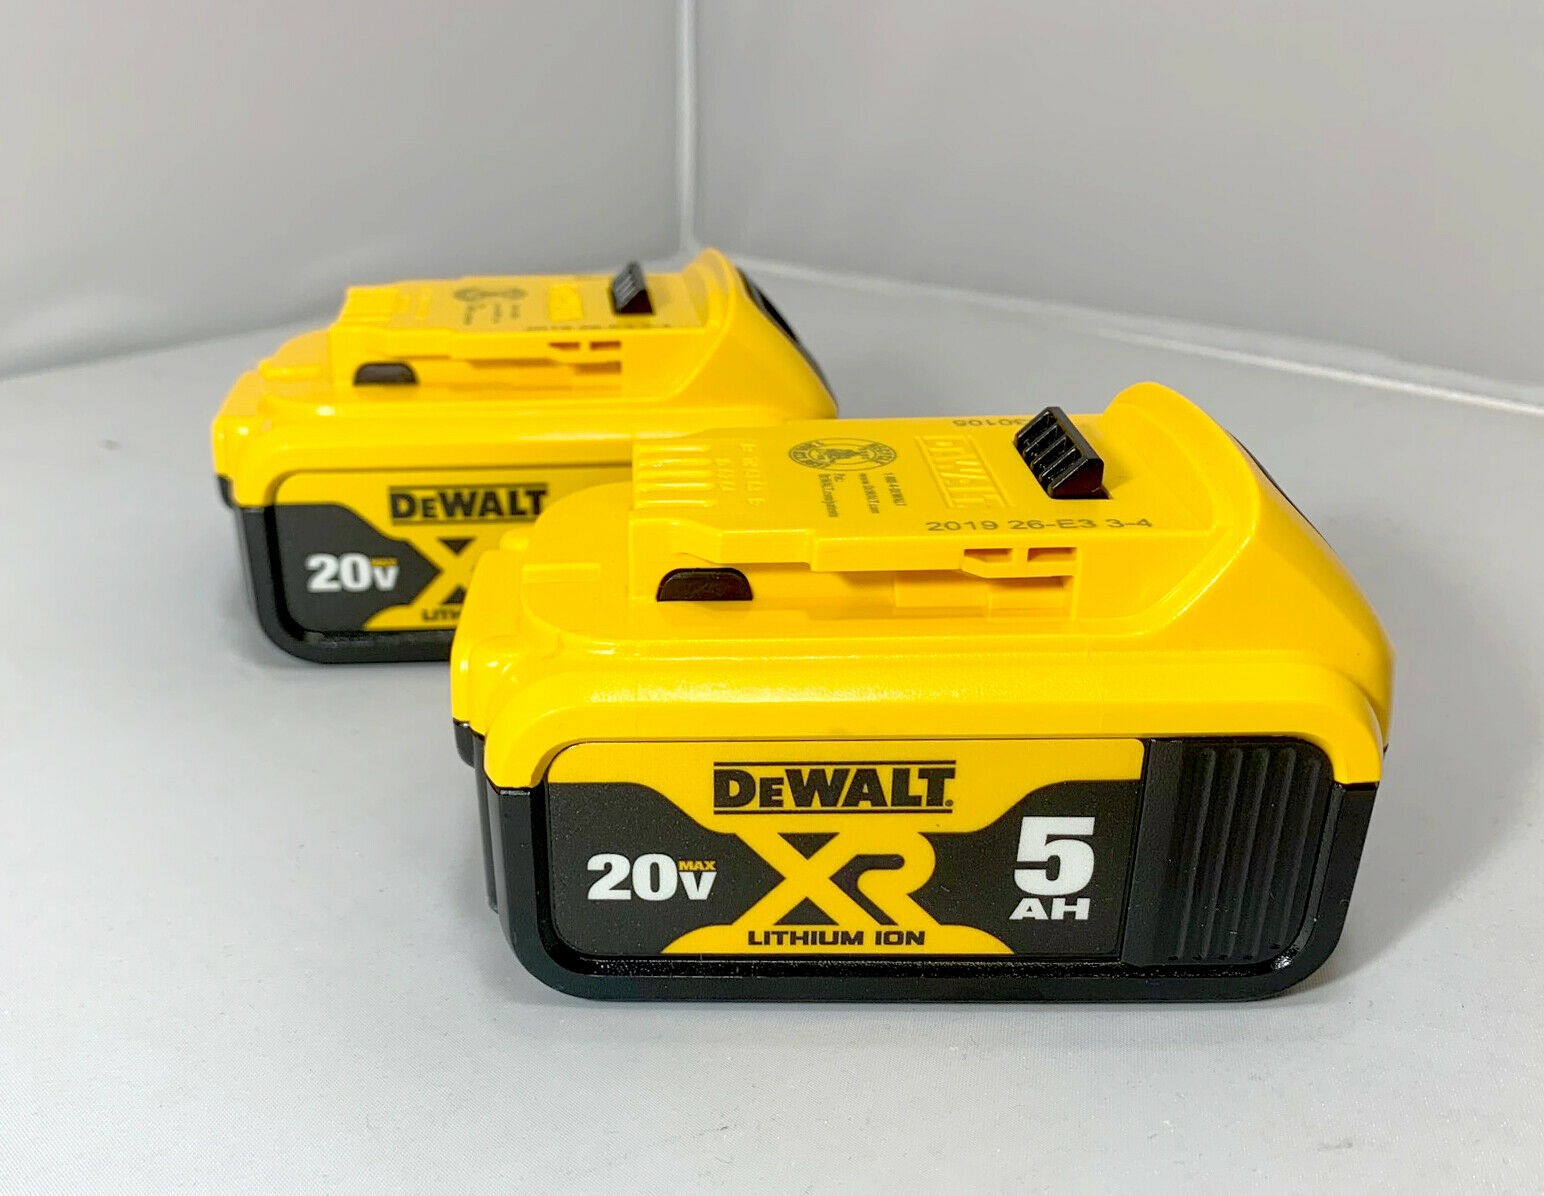 Dewalt 20V DCB205 5.0 Batteries 20 Volt GENUINE – 2 Pack